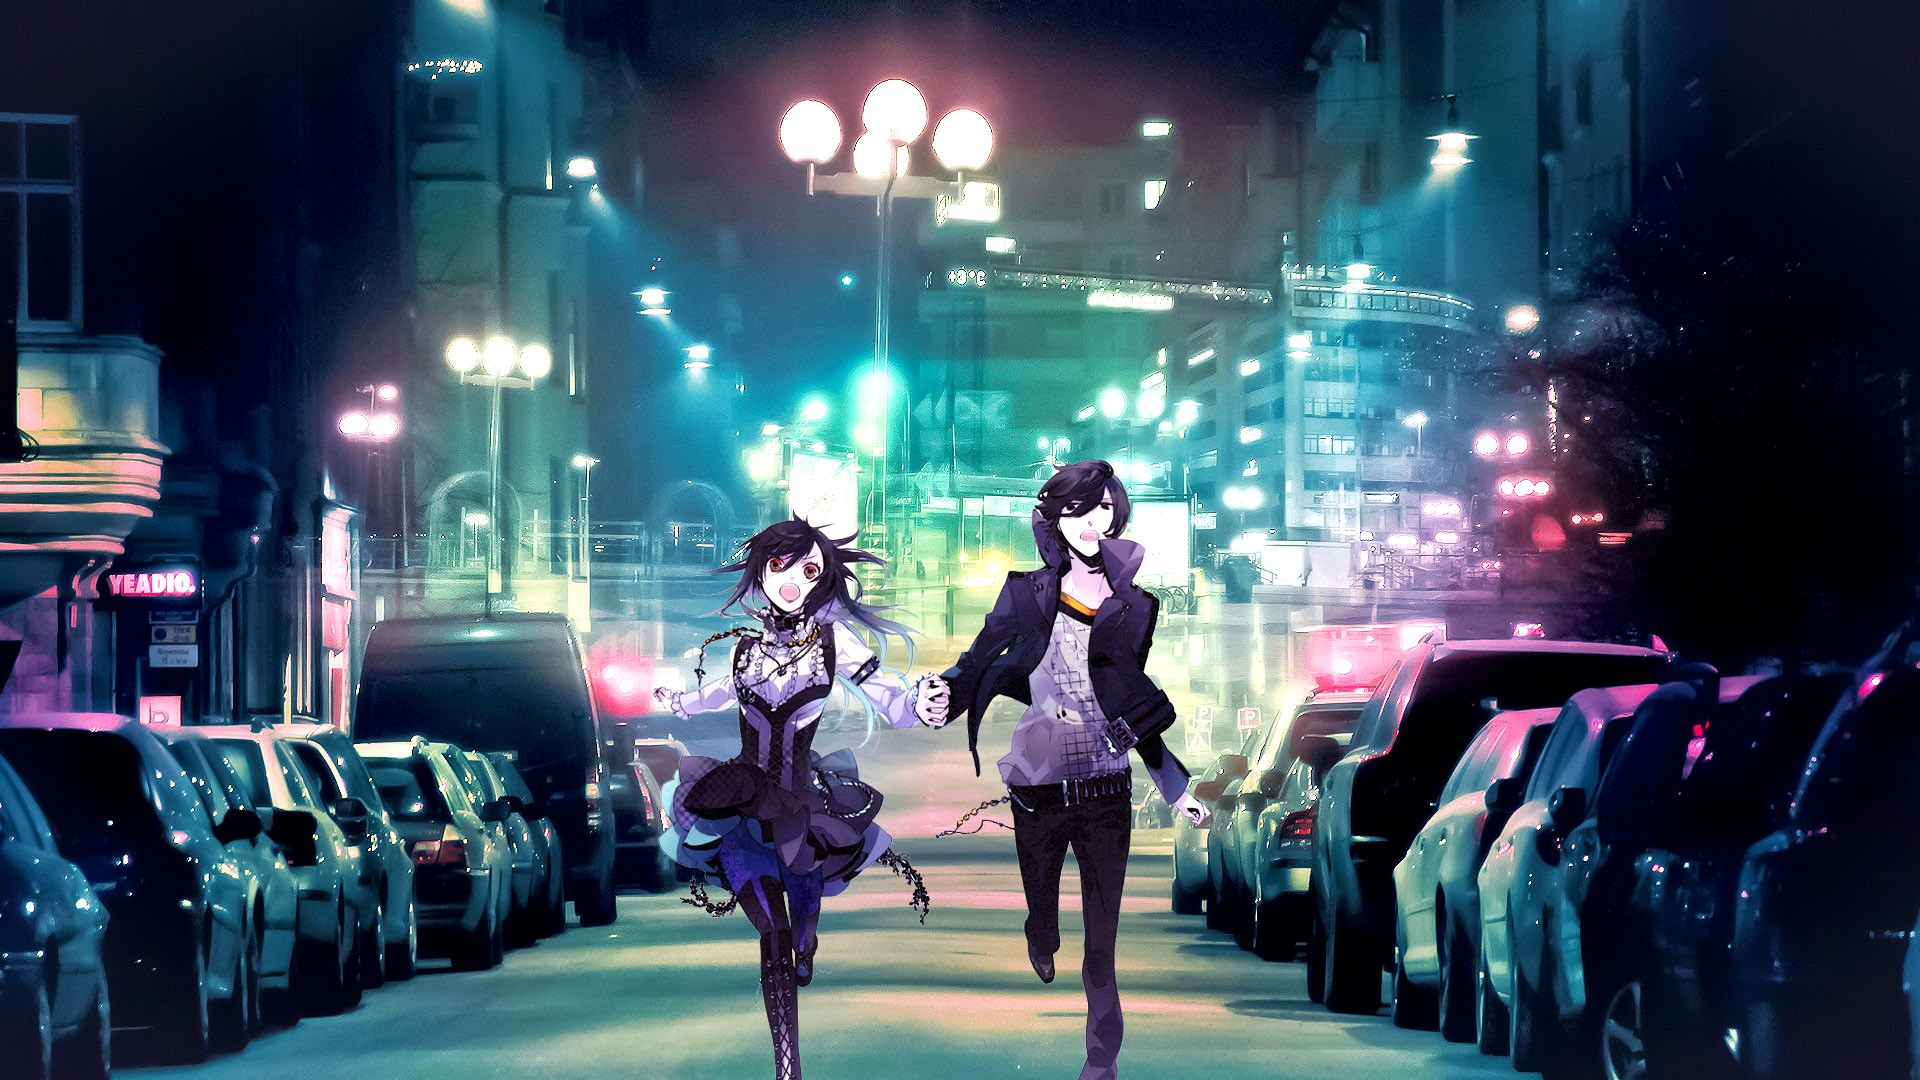 Download-Best-Love-Anime-HD-for-your-Desktop-Background-http-purehdwall-com-anime-wall-wallpaper-wp3604981